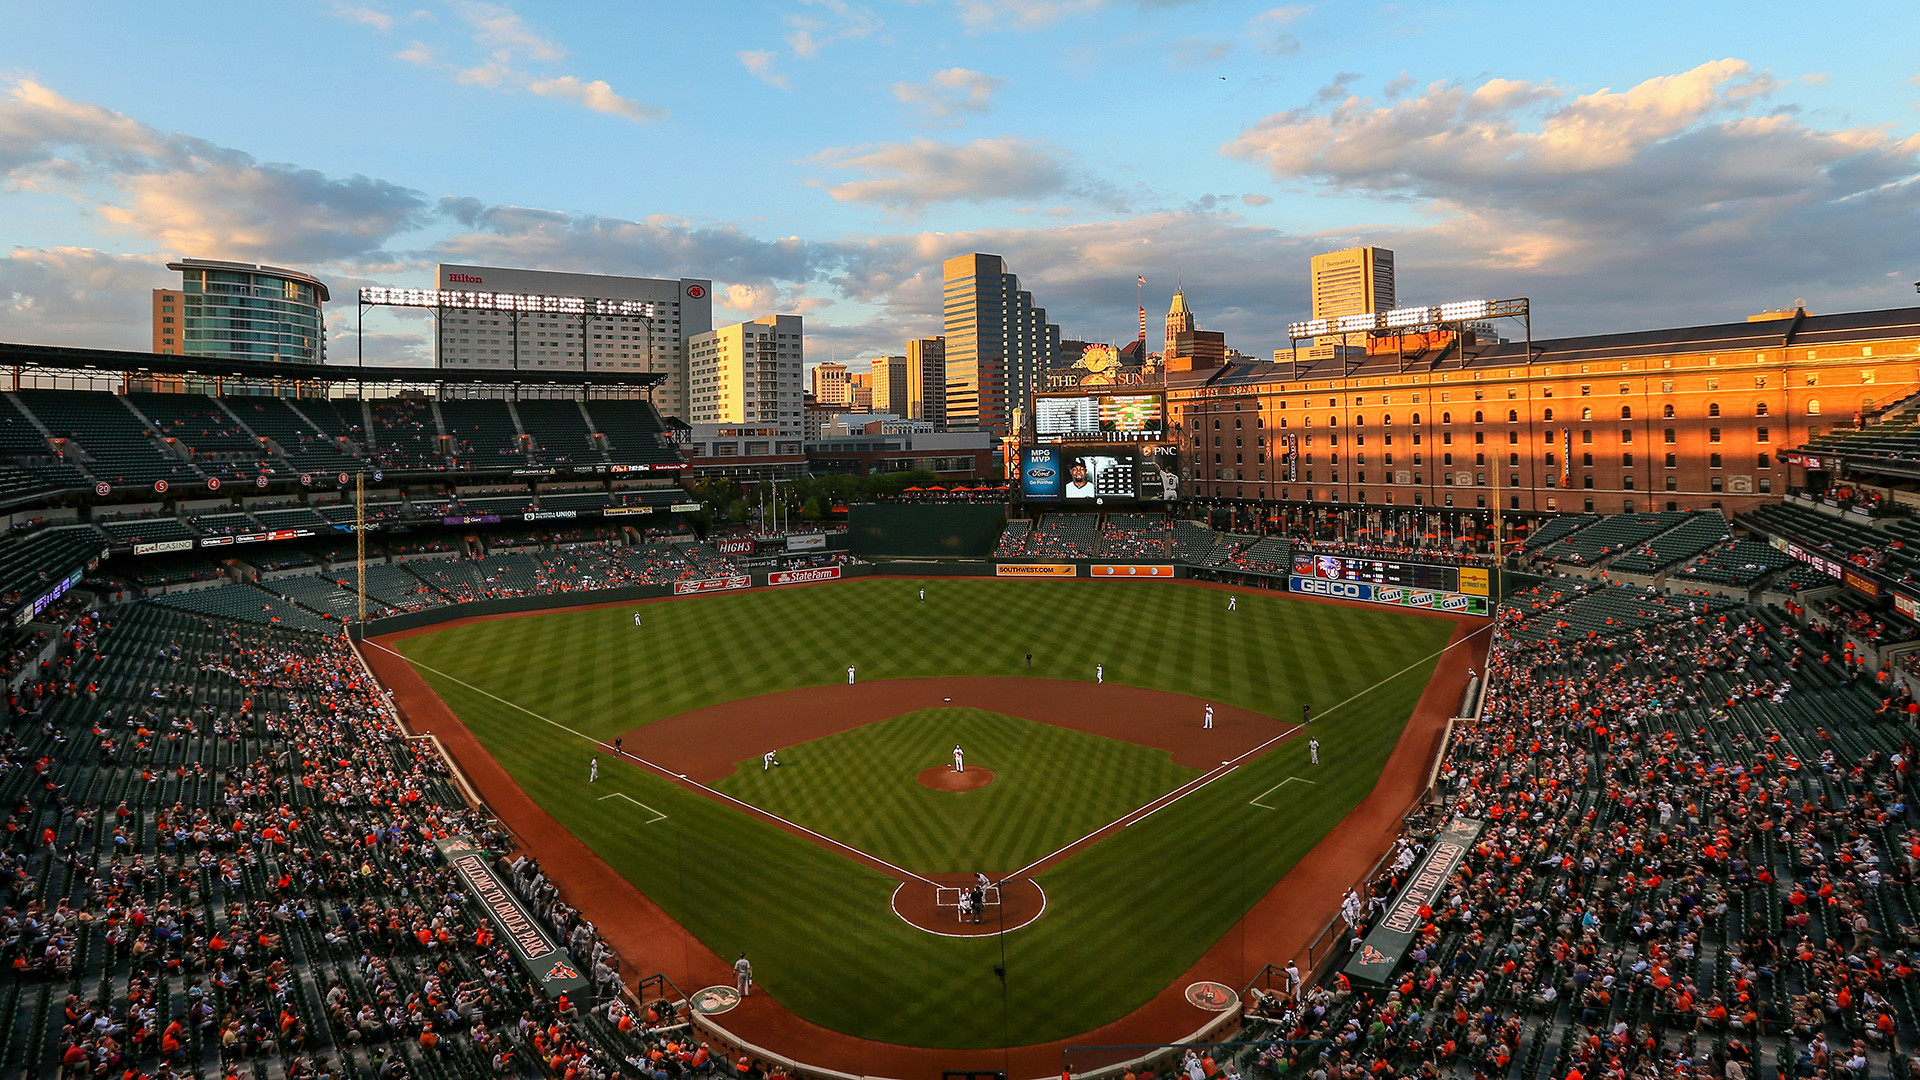 Ussports | Baltimore likely to host 2016 All-Star Game | SPORTAL